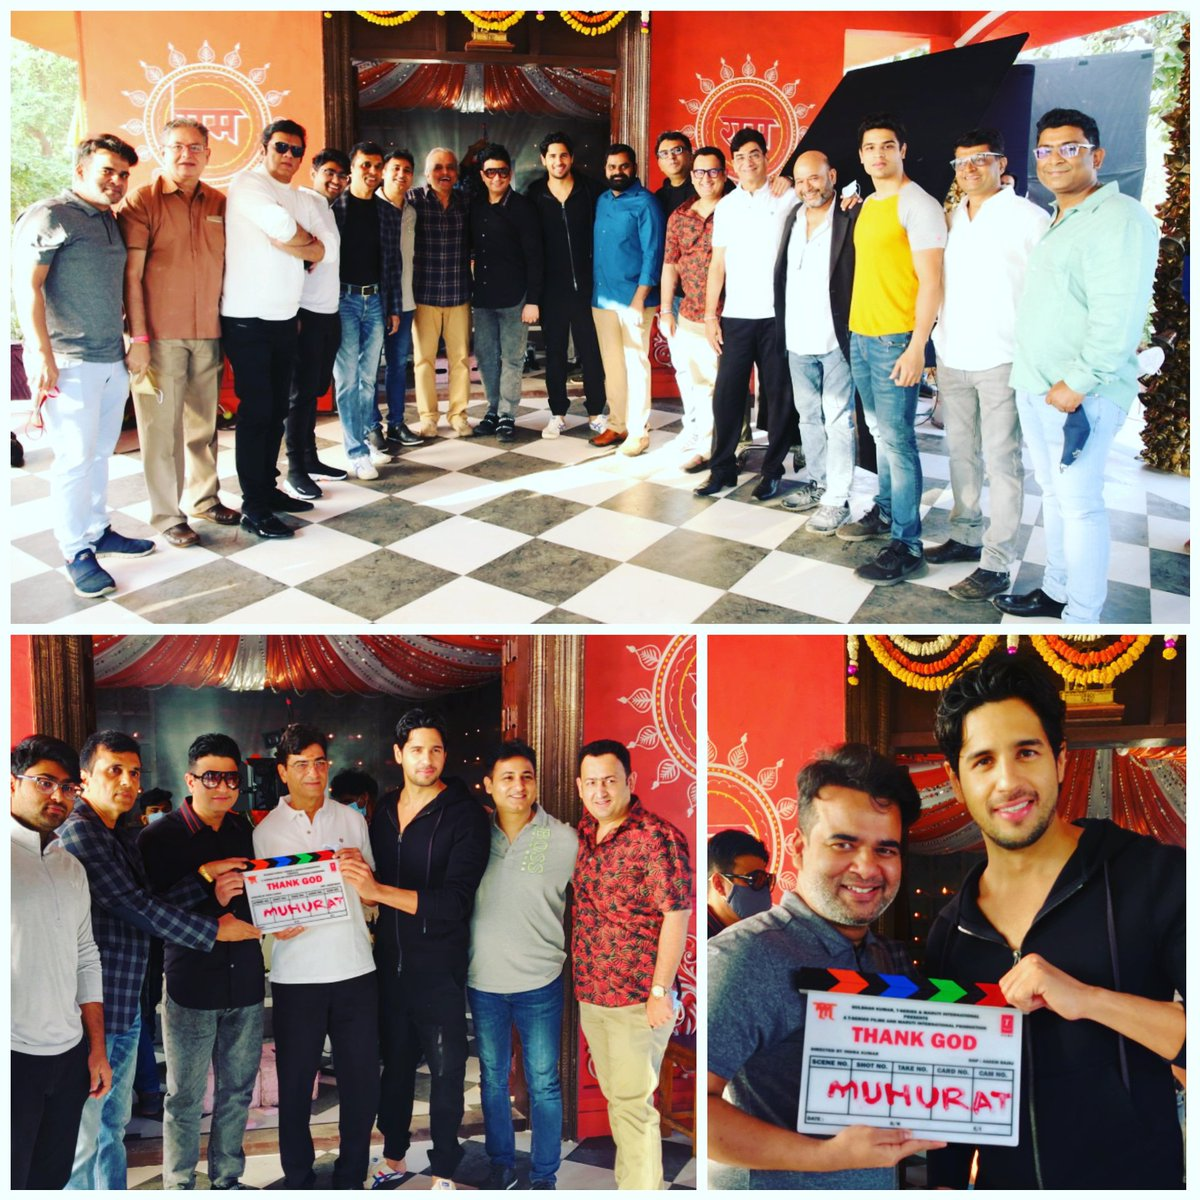 Lights Camera Action 📷🎥 The shoot for #ThankGod begins today in Mumbai! @ajaydevgn @SidMalhotra @Rakulpreet @Indra_kumar_9 #BhushanKumar #KrishanKumar #AshokThakeria @SunirKheterpal @DeepakMukut @anandpandit63 #MarkandAdhikari #YashShah @TSeries #MarutiInternational #tseries